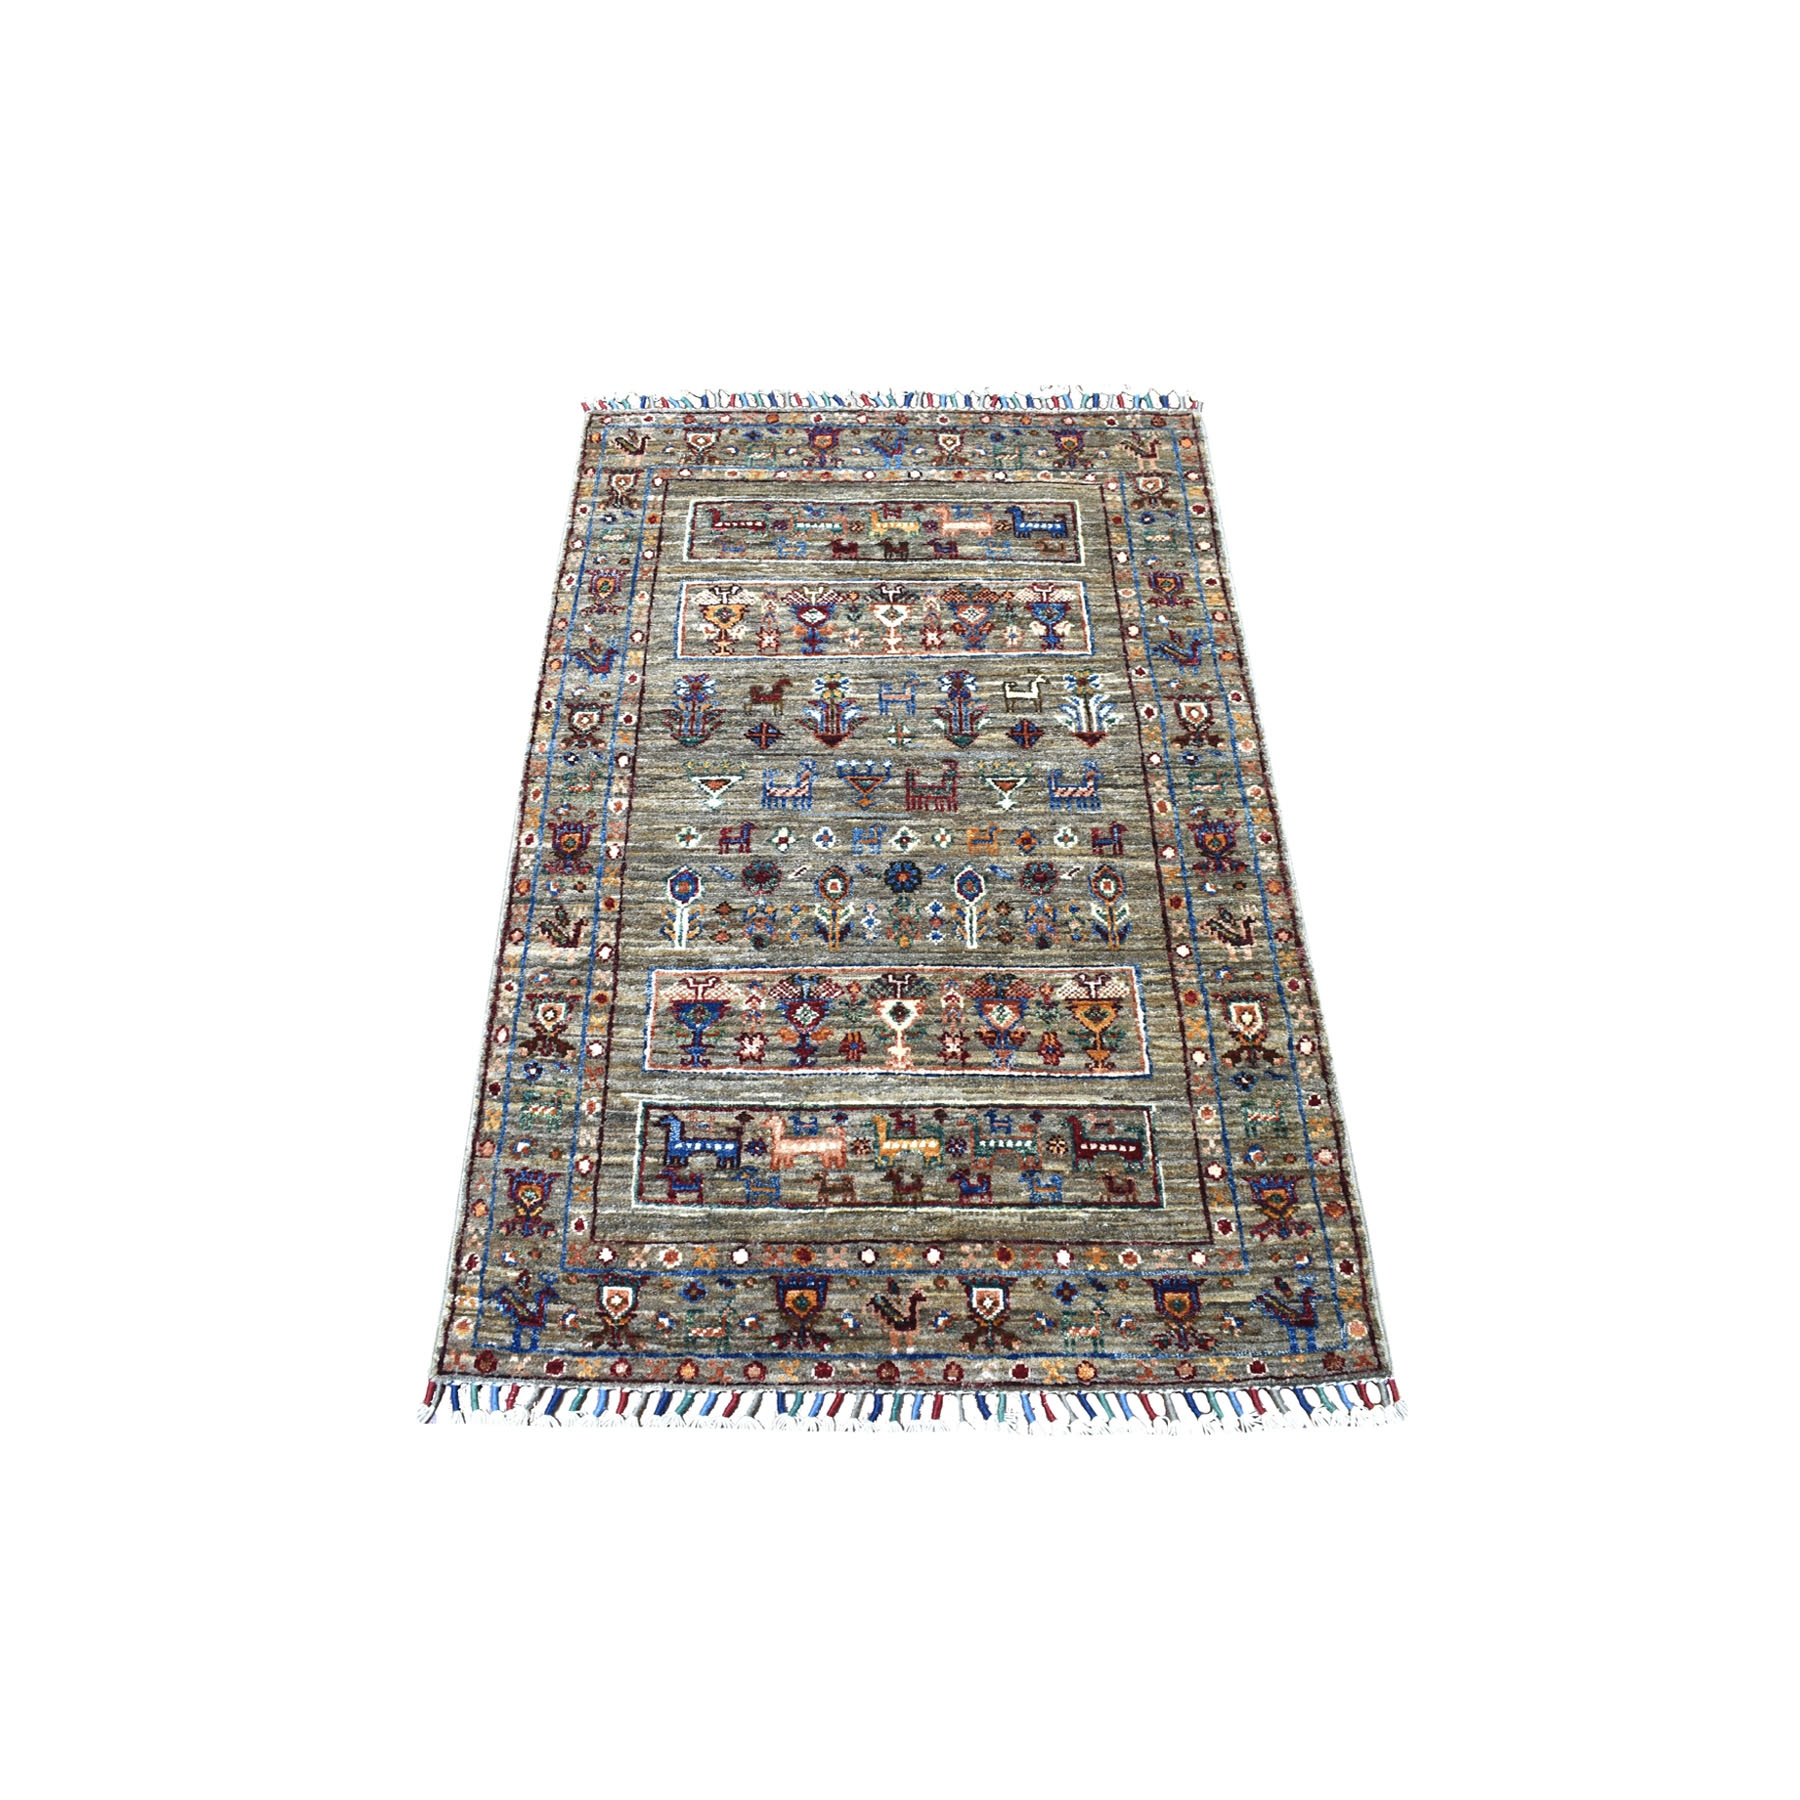 "2'7""x4' Gray Super Kazak Khorjin Design With Colorful Tassles Hand Knotted Natural Wool Ethnic Oriental Rug"